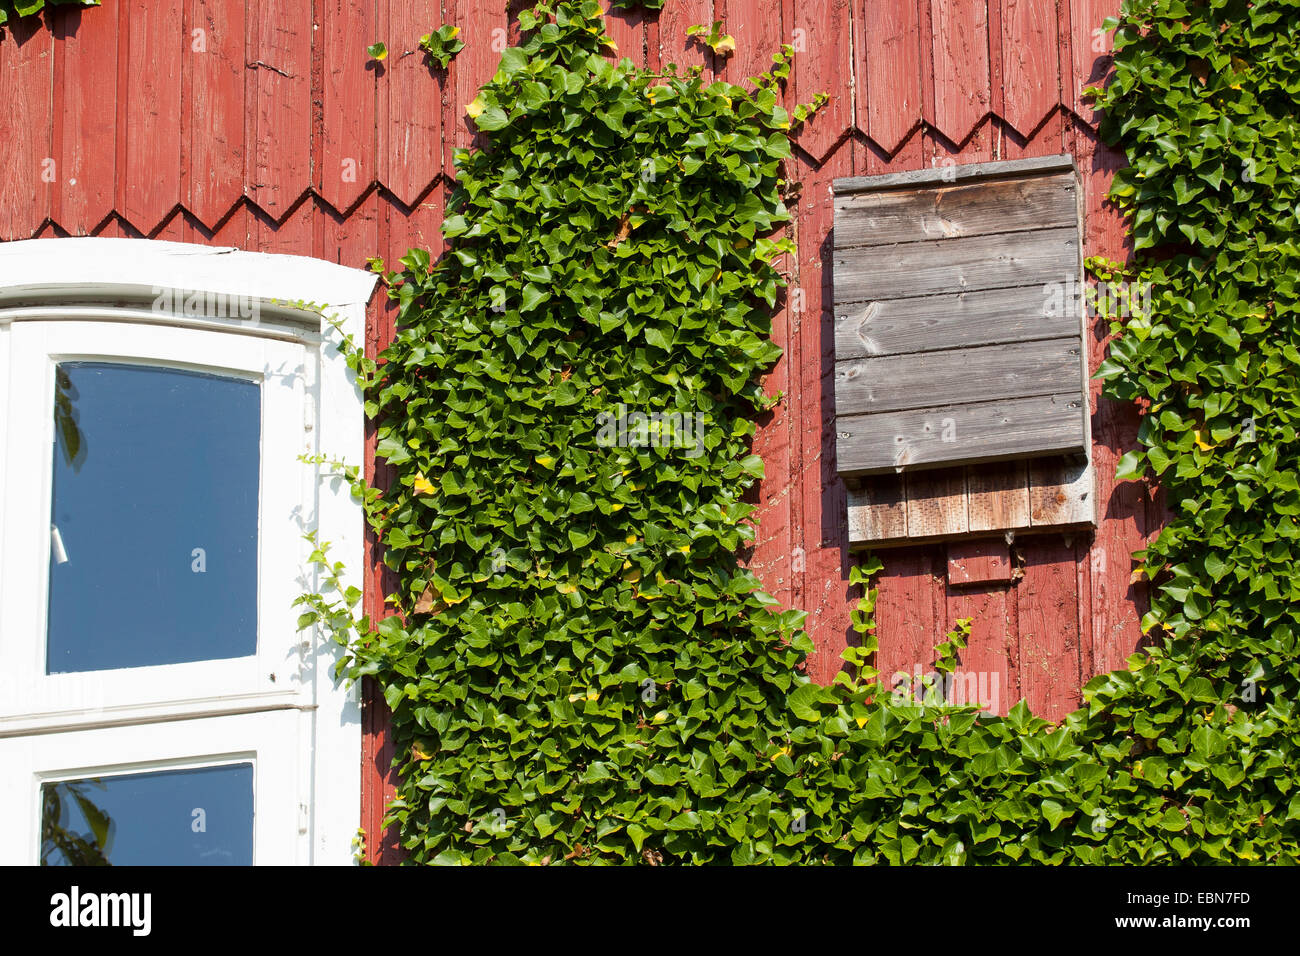 ivy clad houses stockfotos ivy clad houses bilder alamy. Black Bedroom Furniture Sets. Home Design Ideas